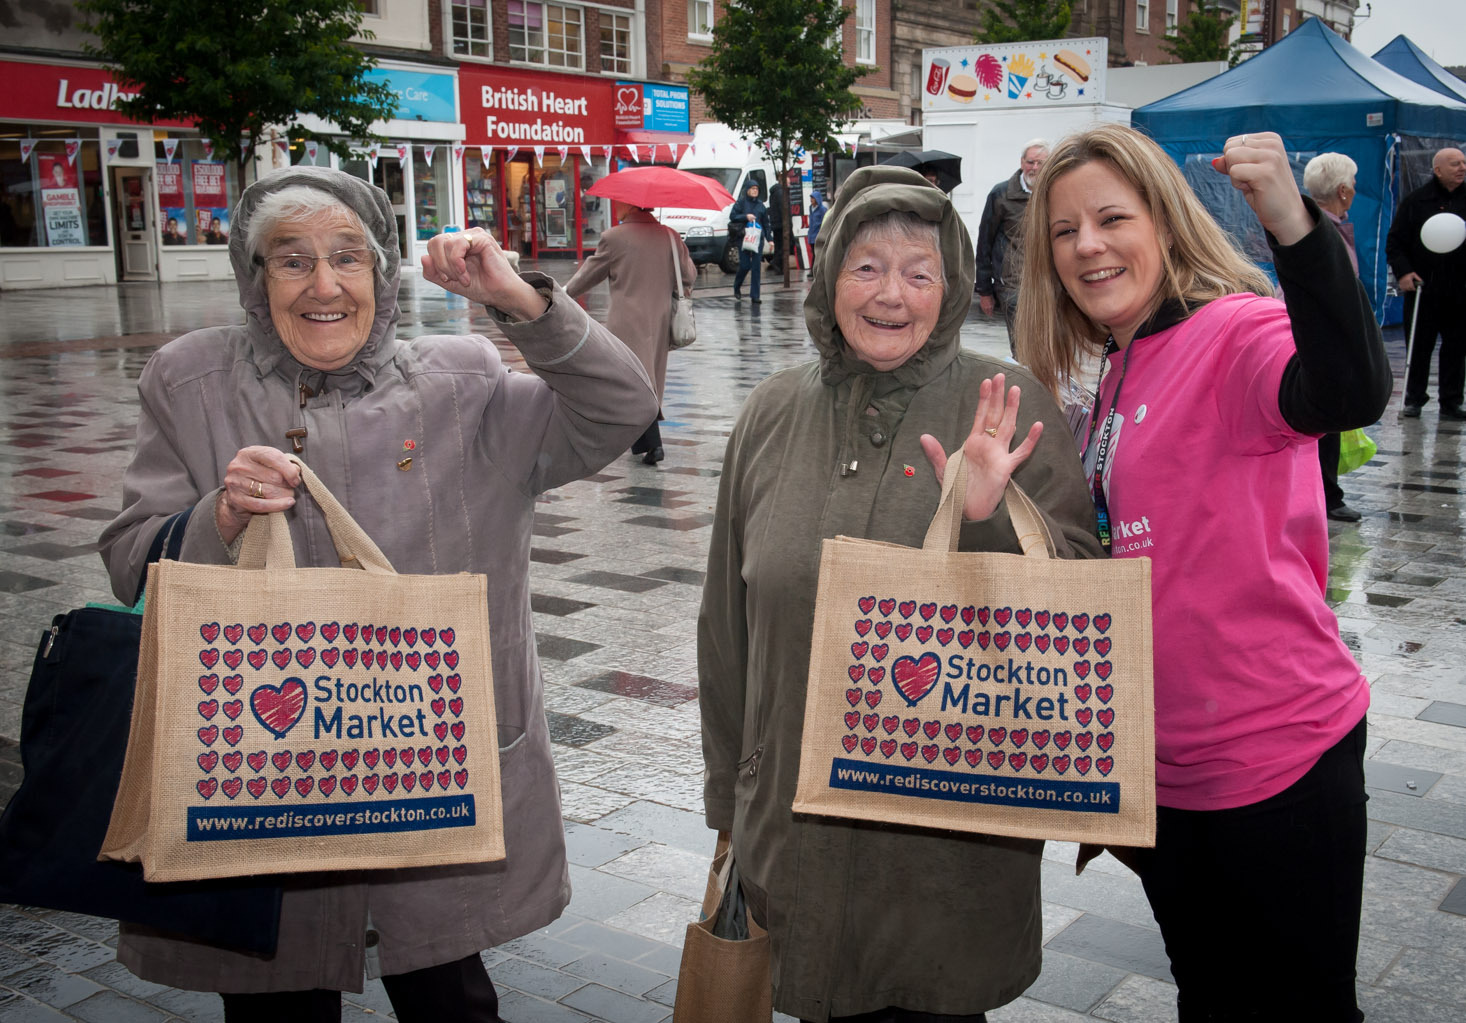 MARKET GIVEAWAY: Two lucky shoppers are given a bag full of freebies